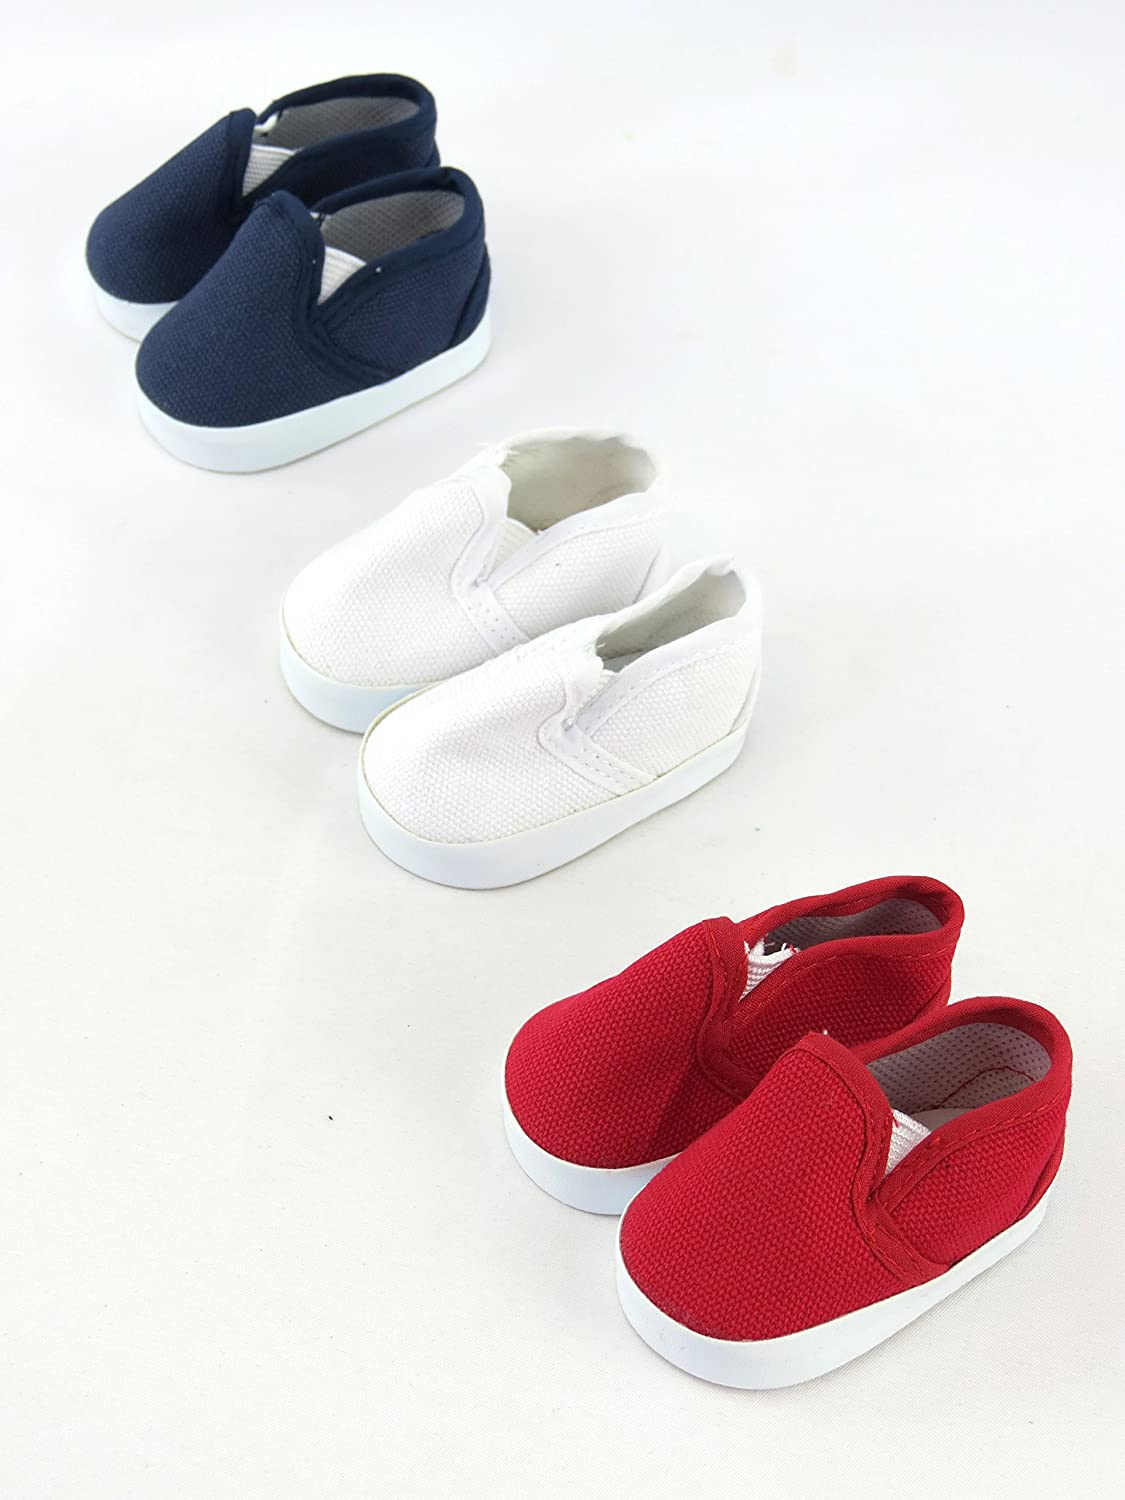 White Madame Alexander Fits 18 American Girl Dolls American Fashion World etc   18 Inch Doll Accessories and Blue Our Generation and Blue 3 Pack of Canvas Slip Ons: Red Fits 18 American Girl Dolls